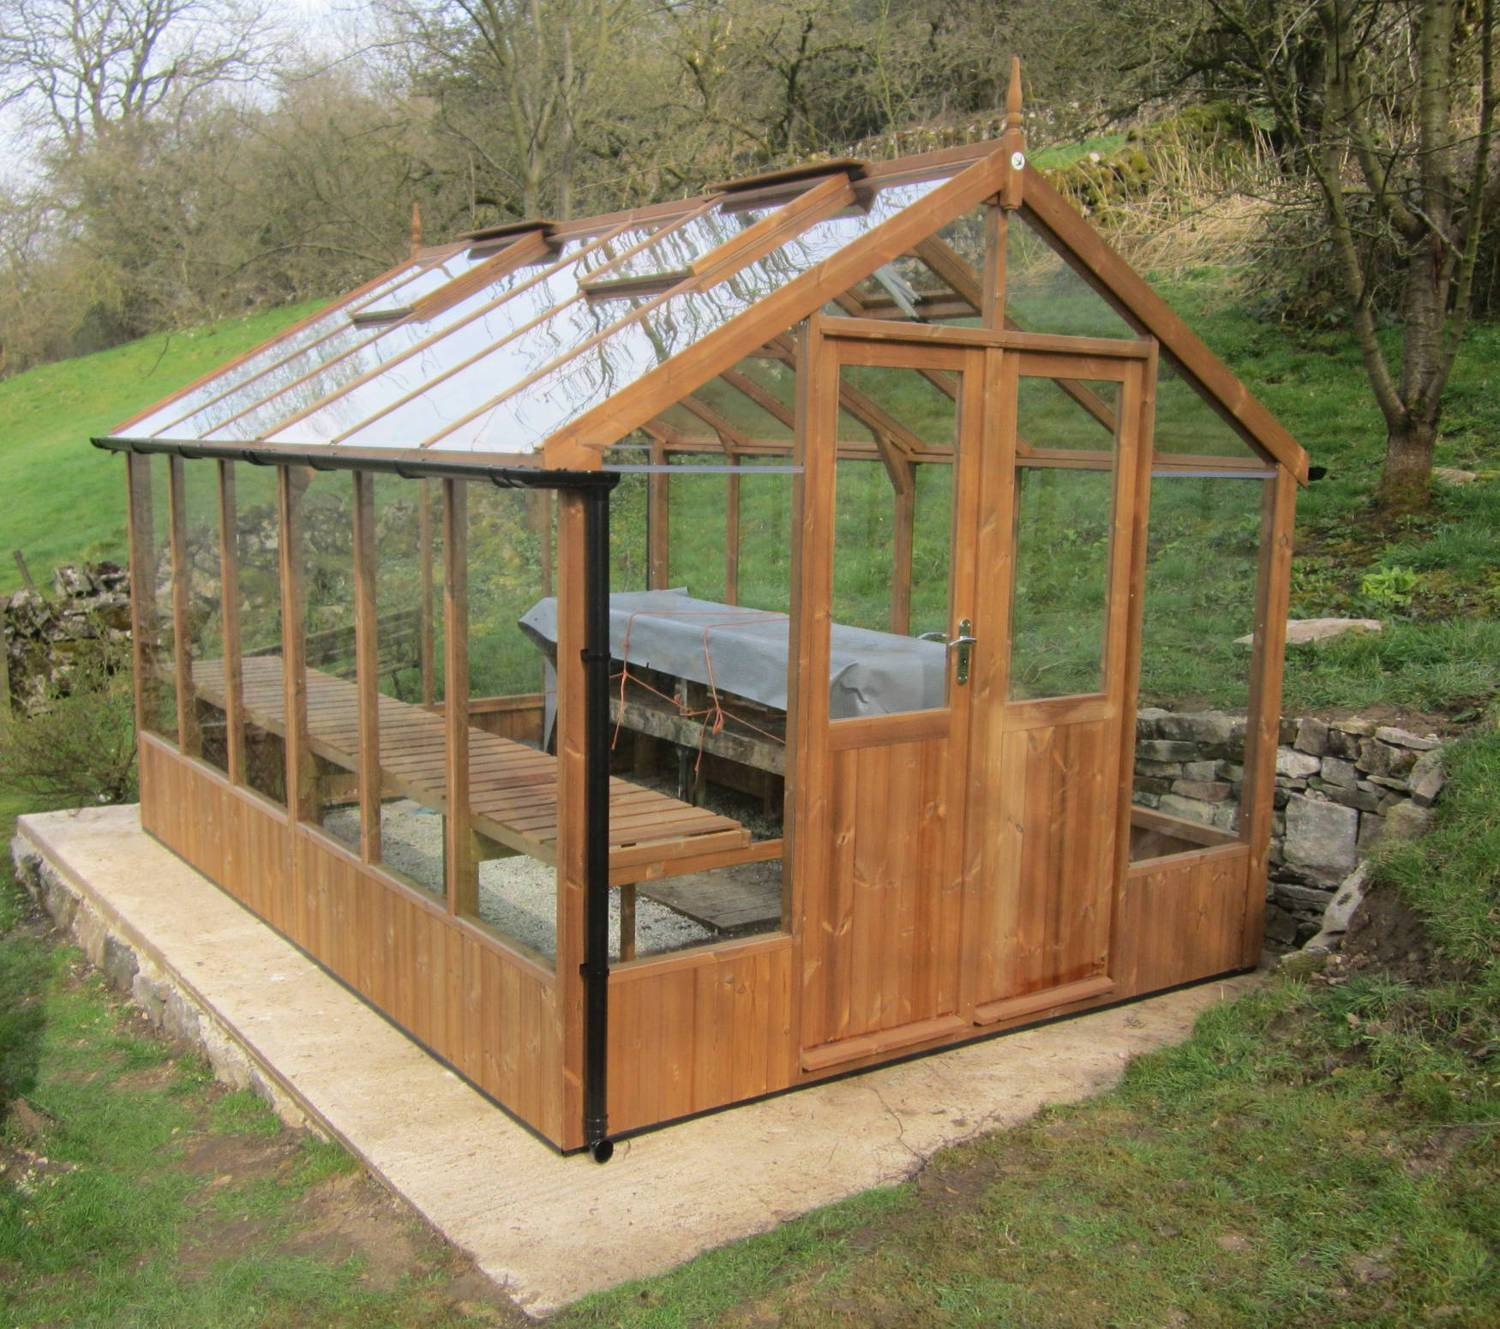 Swallow raven 8x8 wooden greenhouse greenhouse stores for Small wooden greenhouse plans